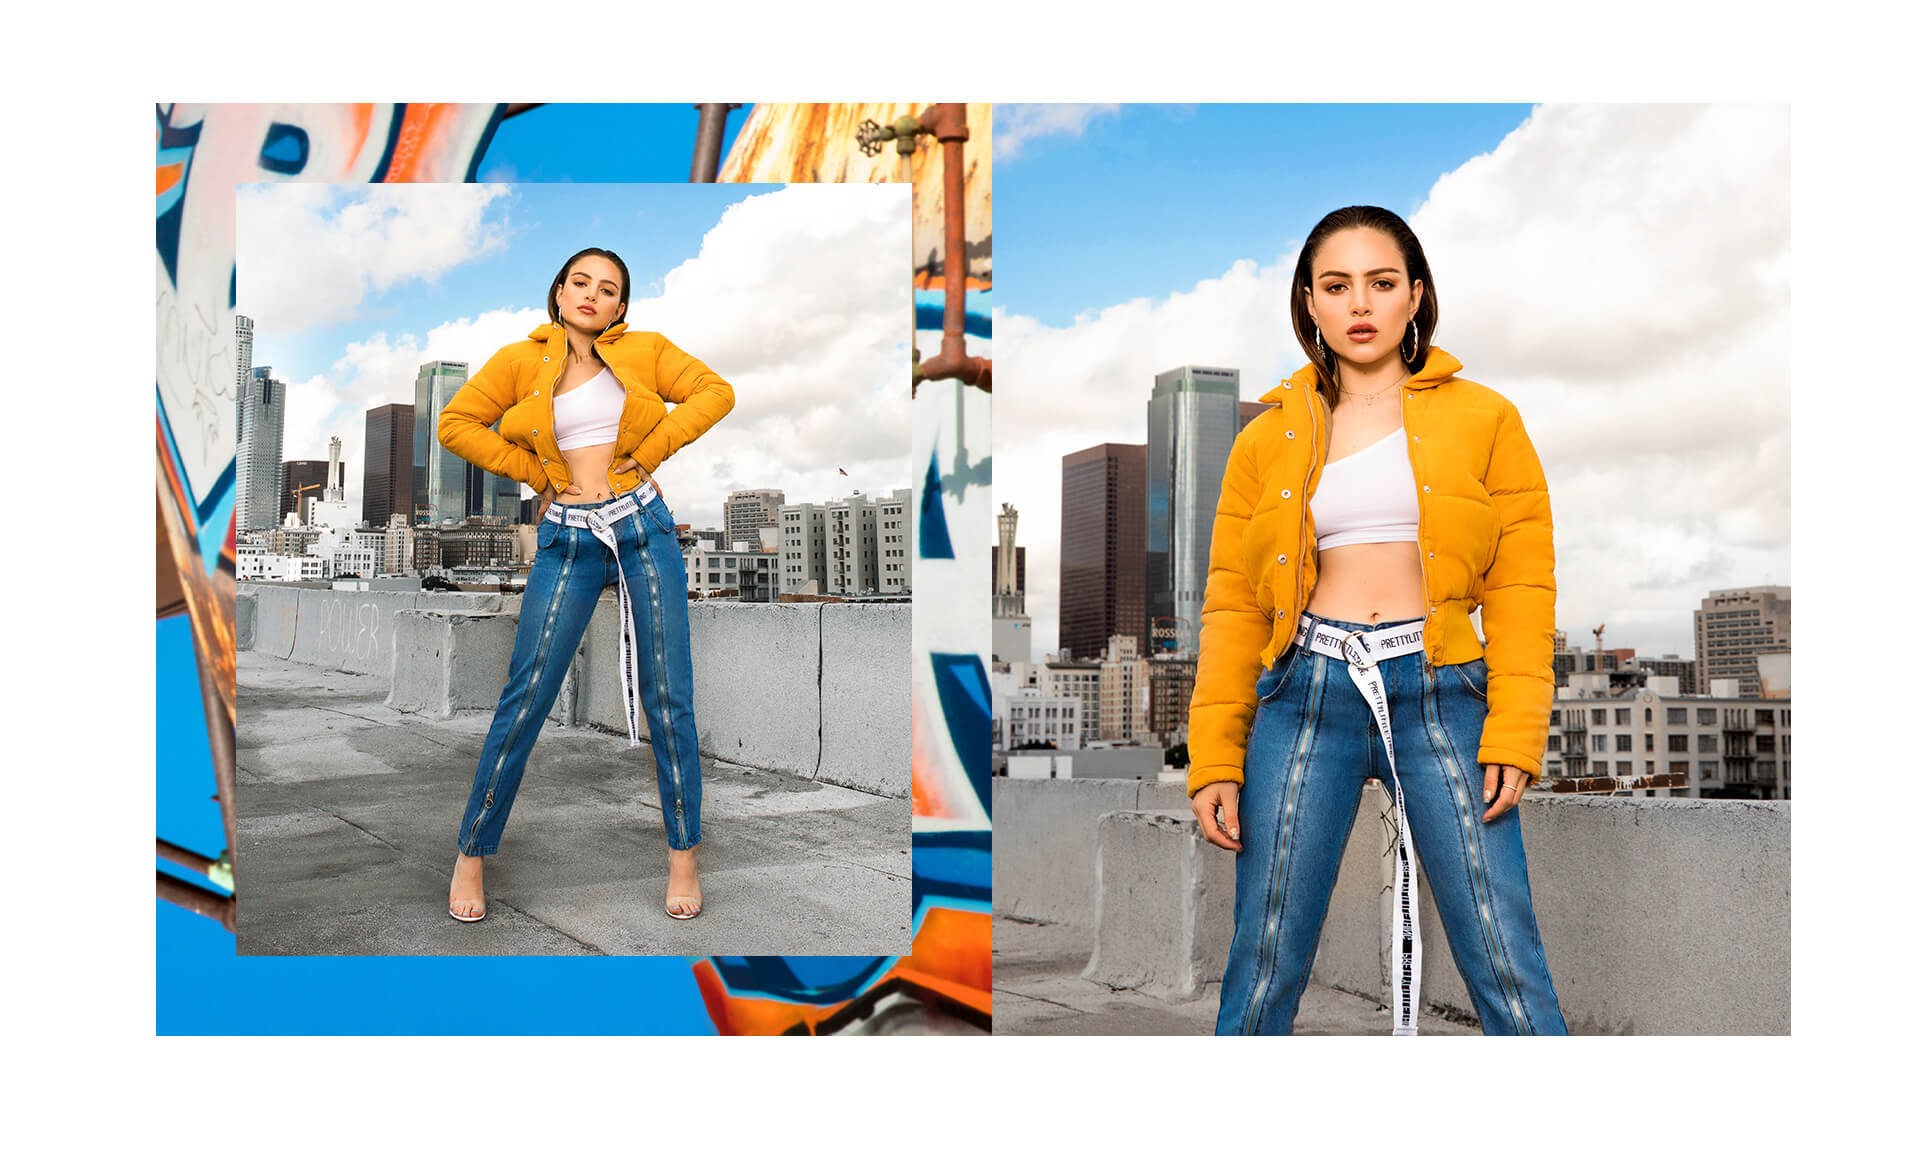 Nathalie Paris Yellow Jacket & Denim Jeans Shoot 2 Desktop